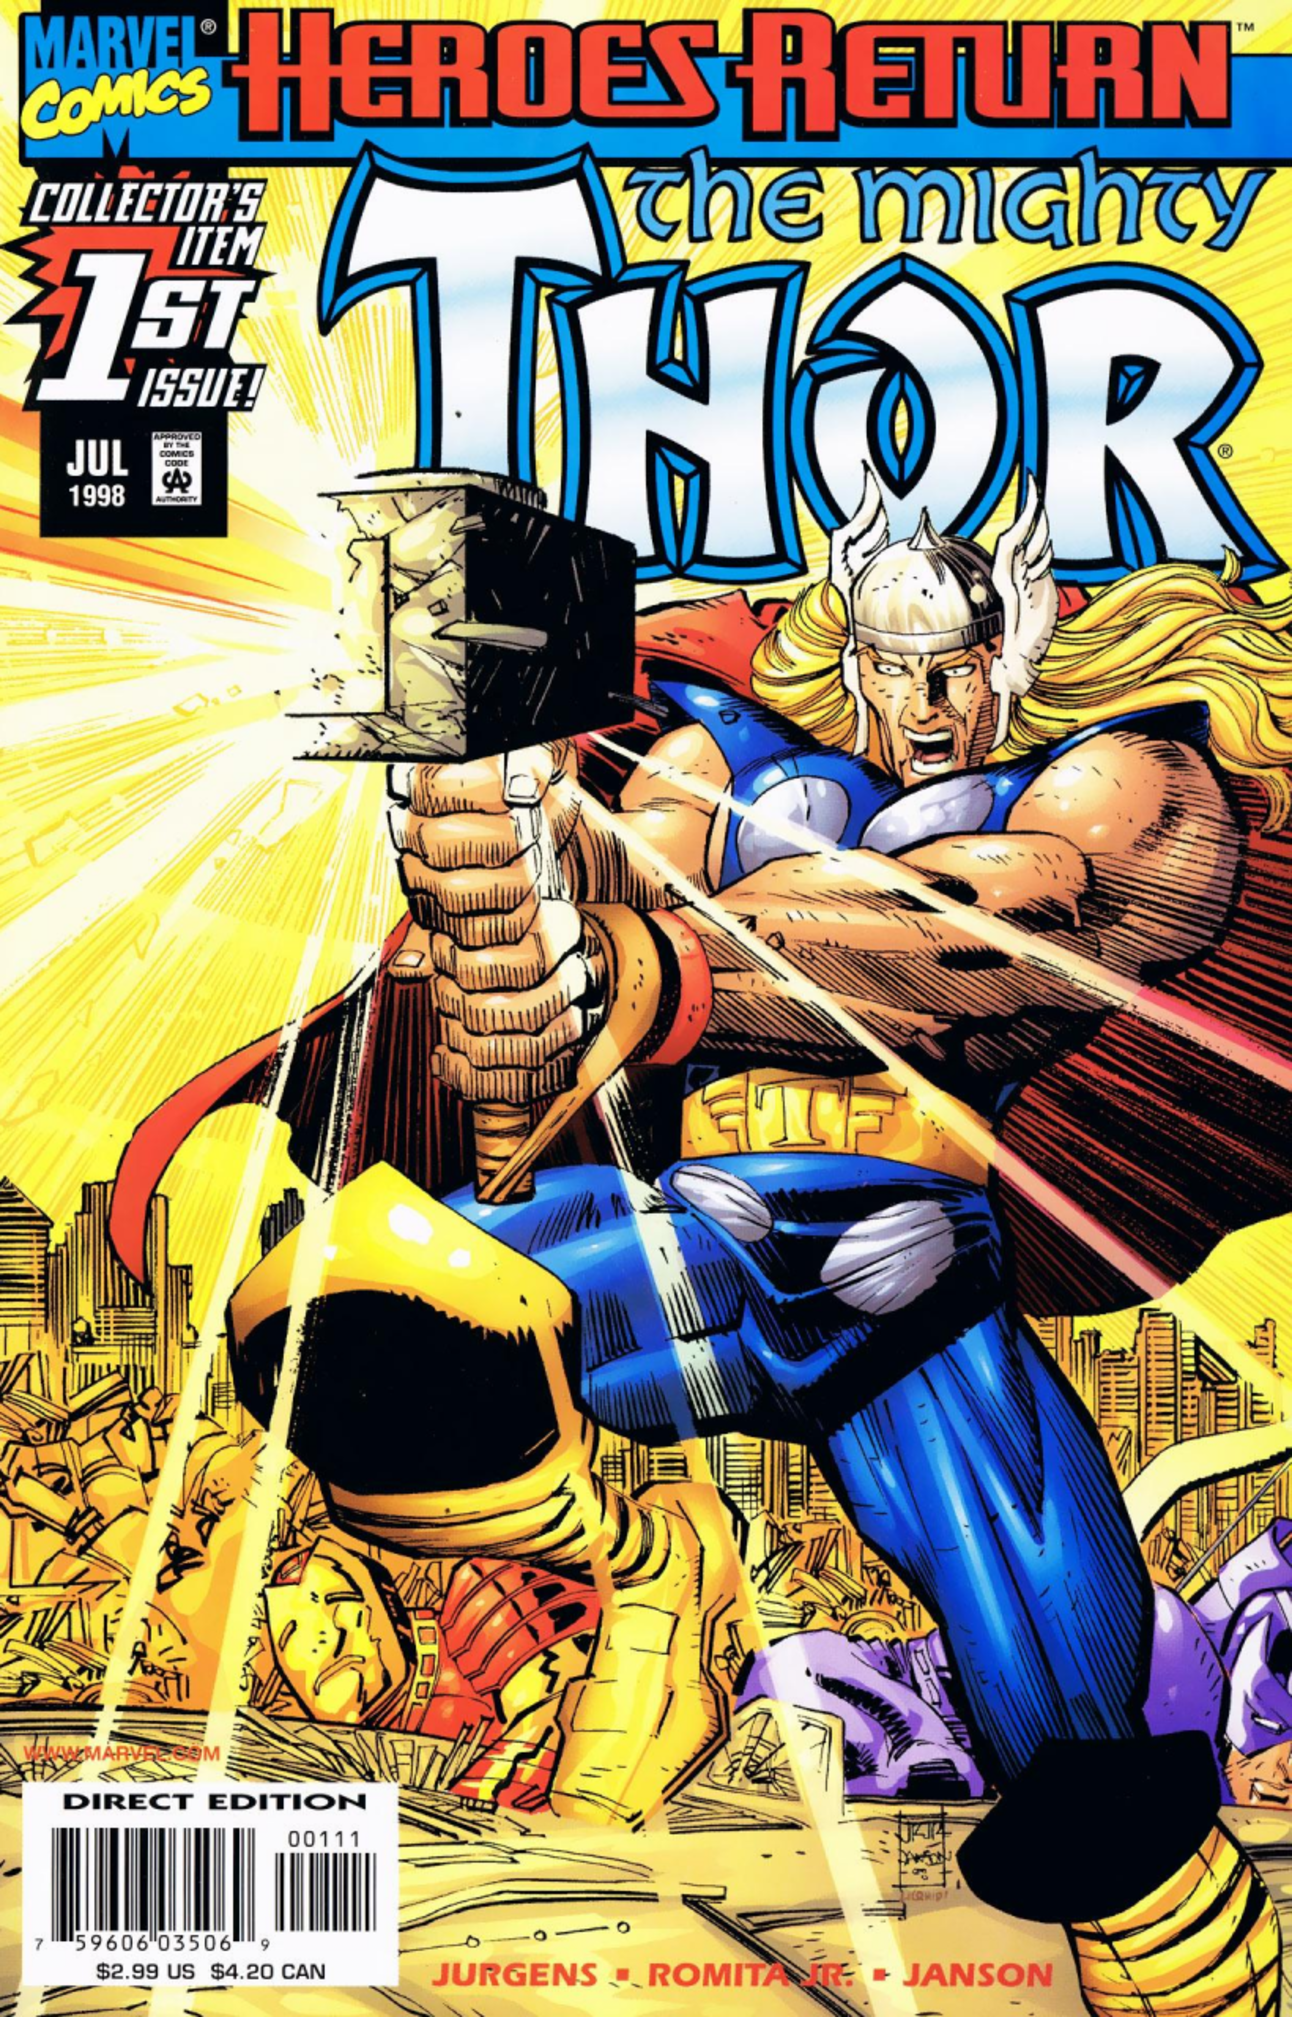 25 of the best comics covers of the last 25 years